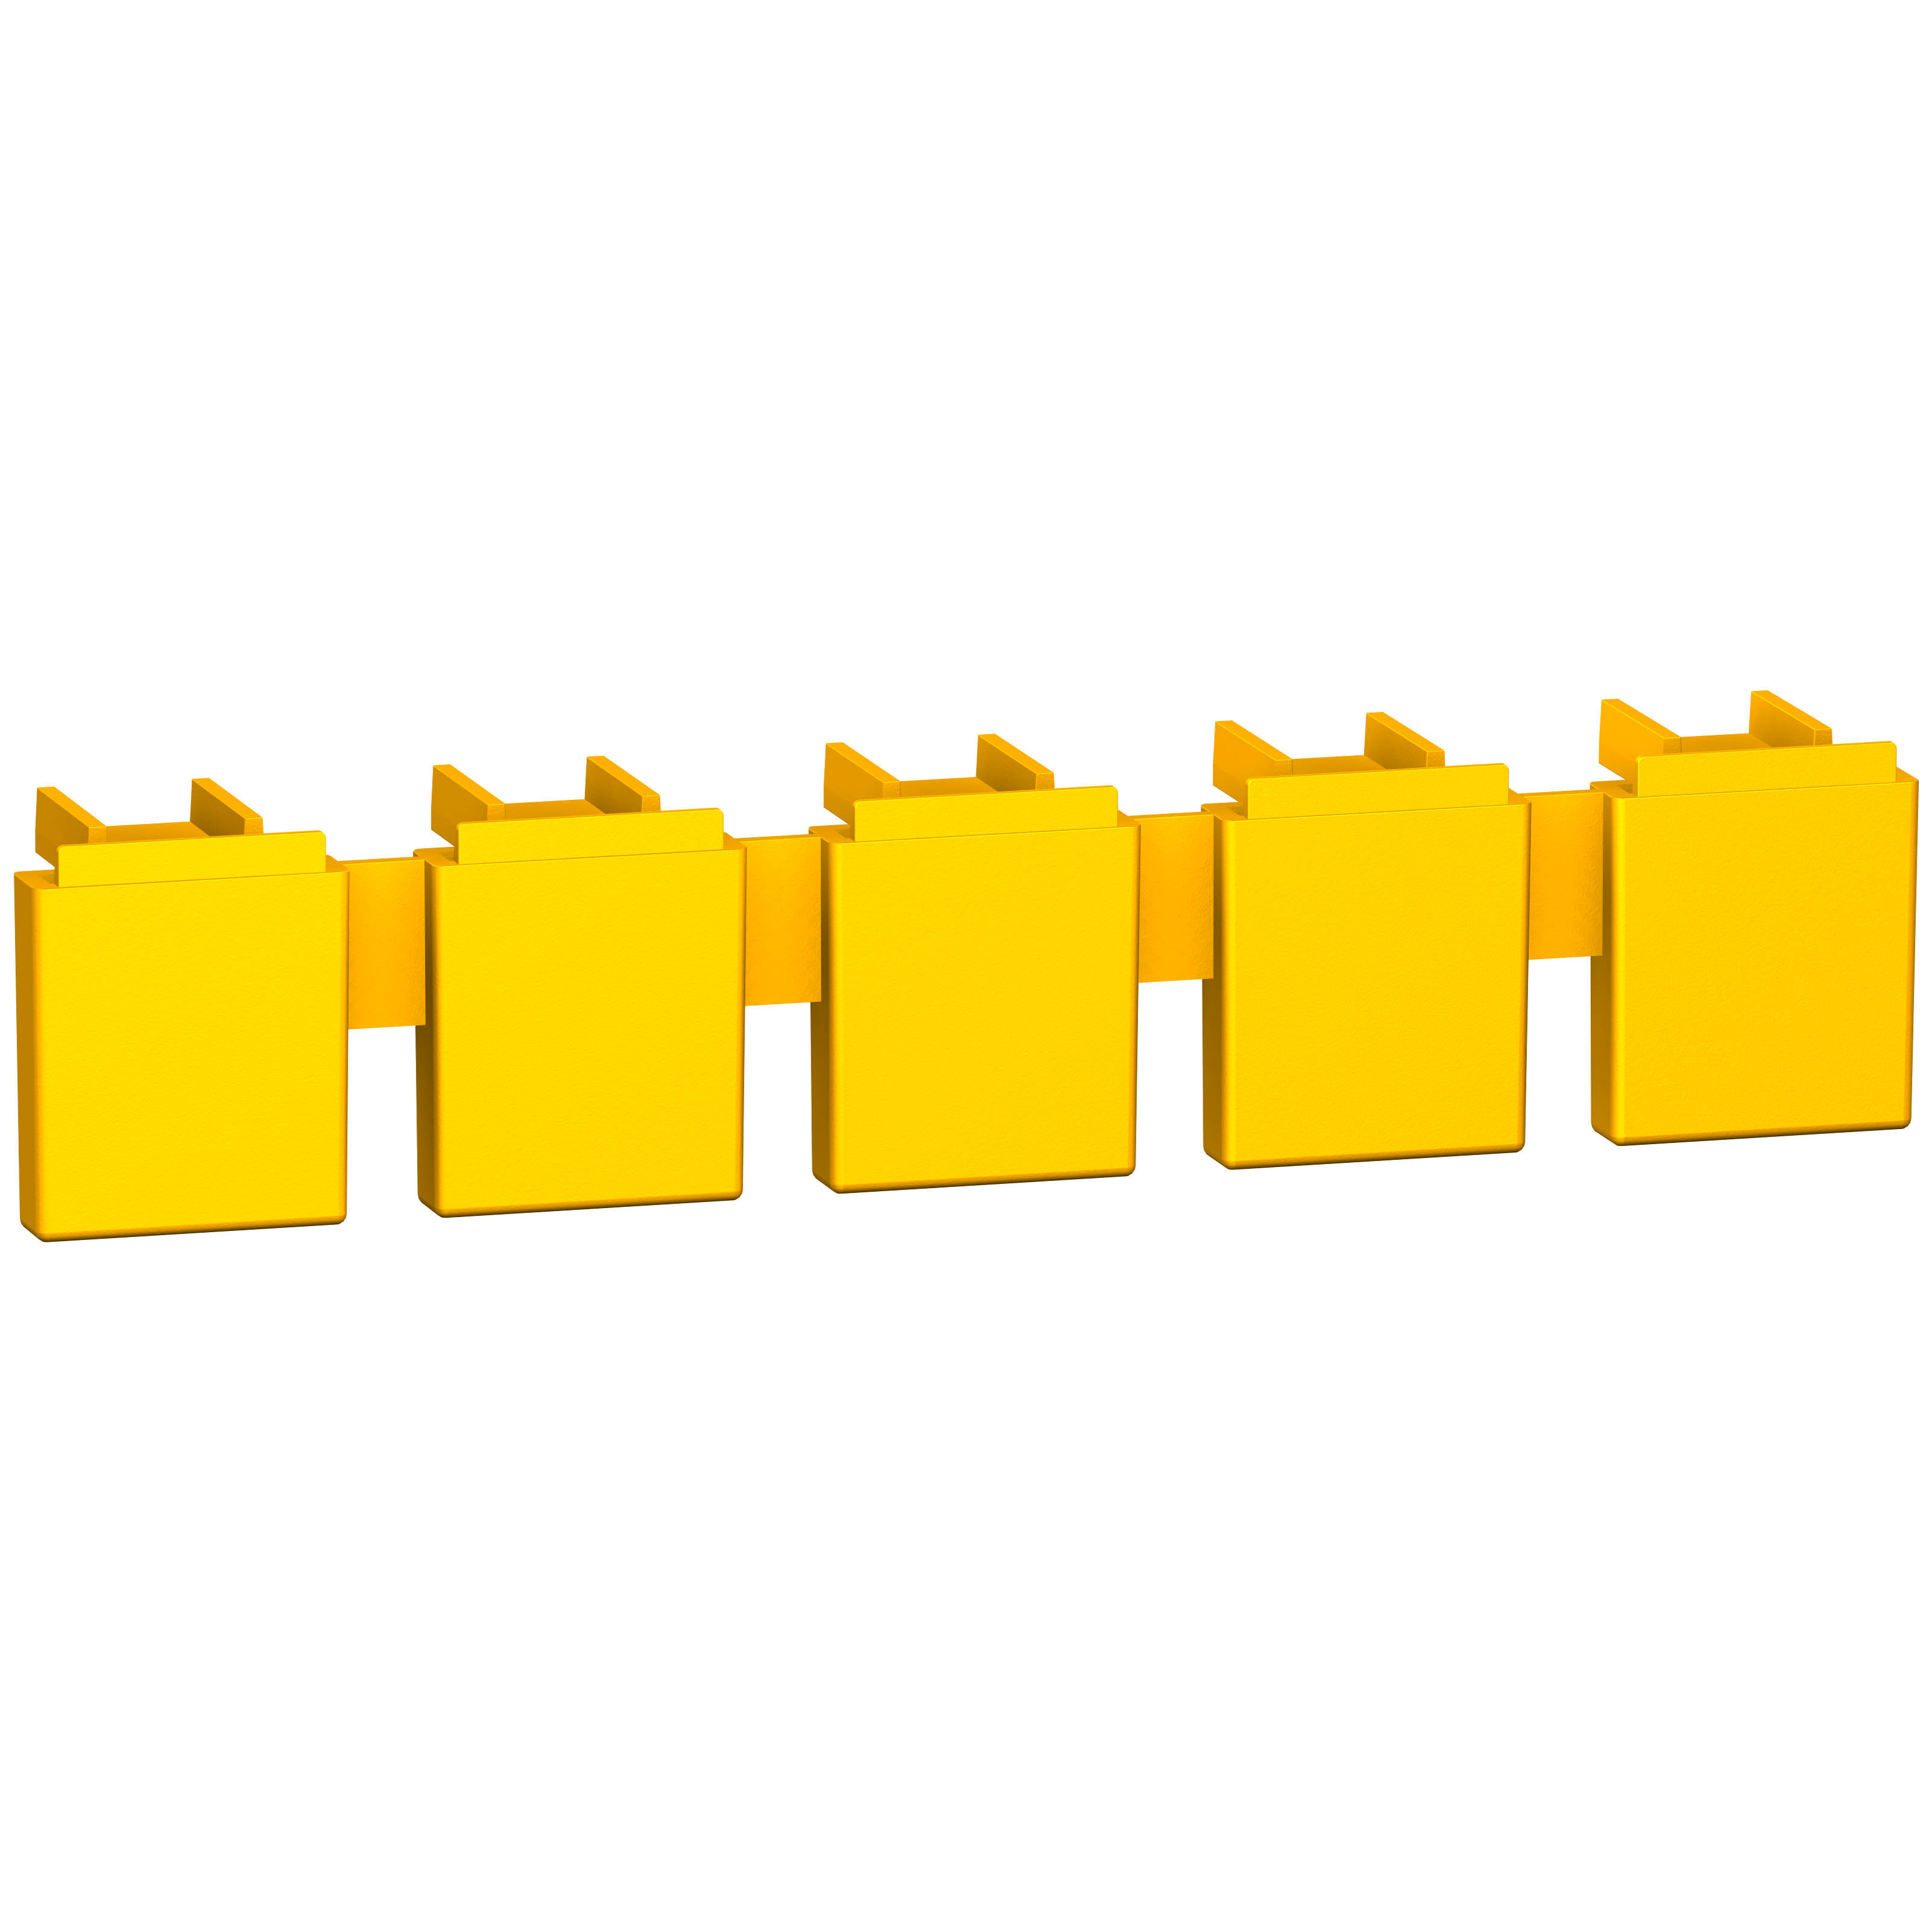 SQUARE D 1 set of 20 comb busbar tooth covers for C60 UL 1077